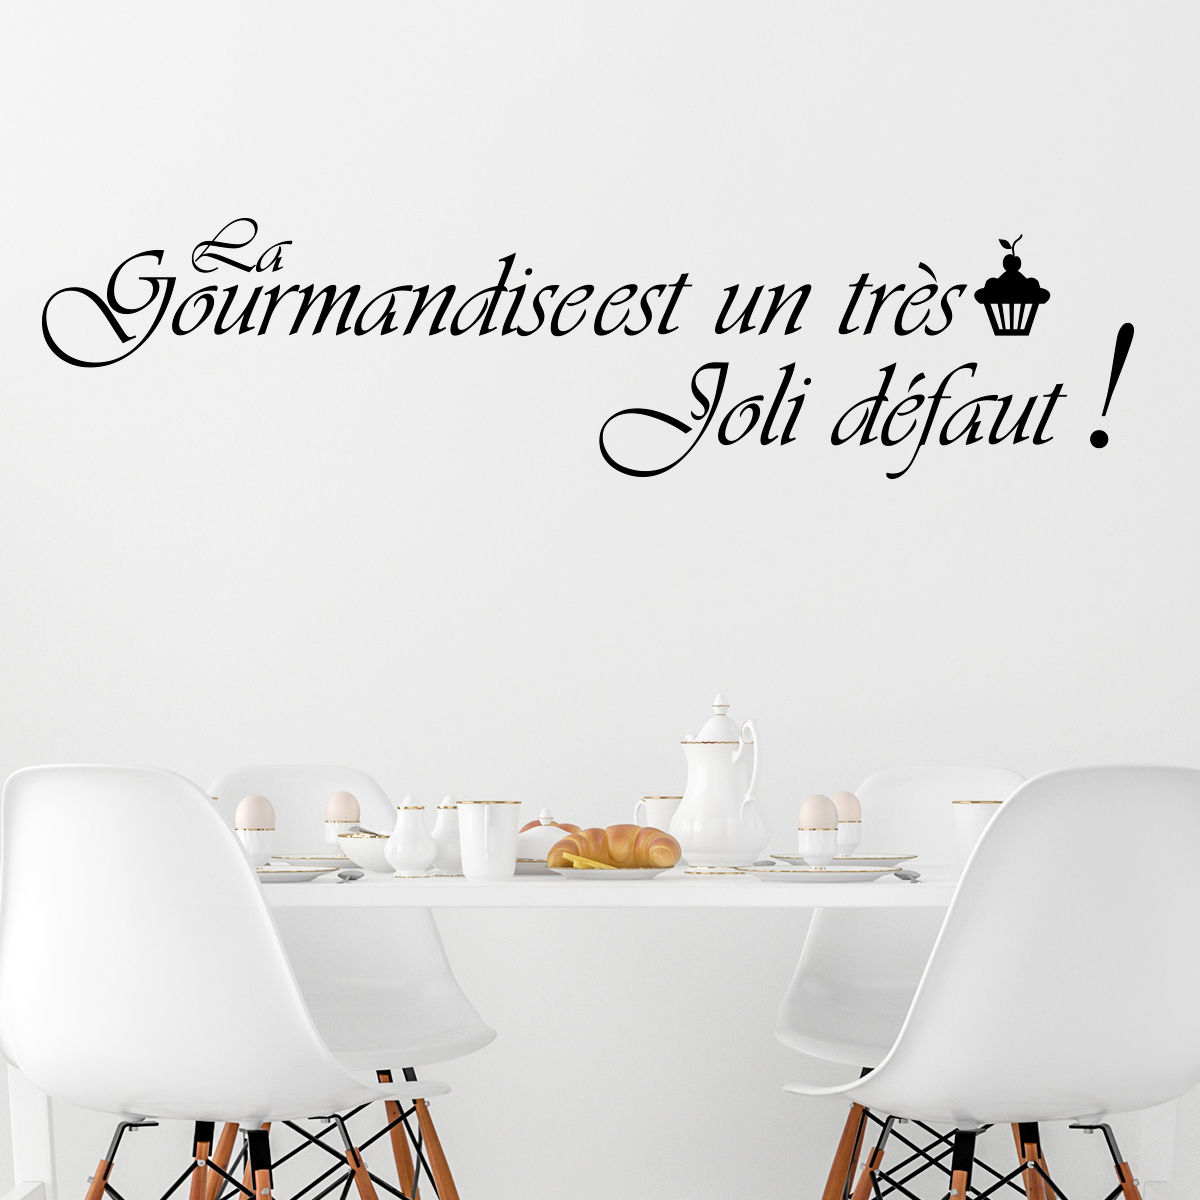 sticker la gourmandise est un tr u00e8s joli d u00e9faut - stickers citations fran u00e7ais